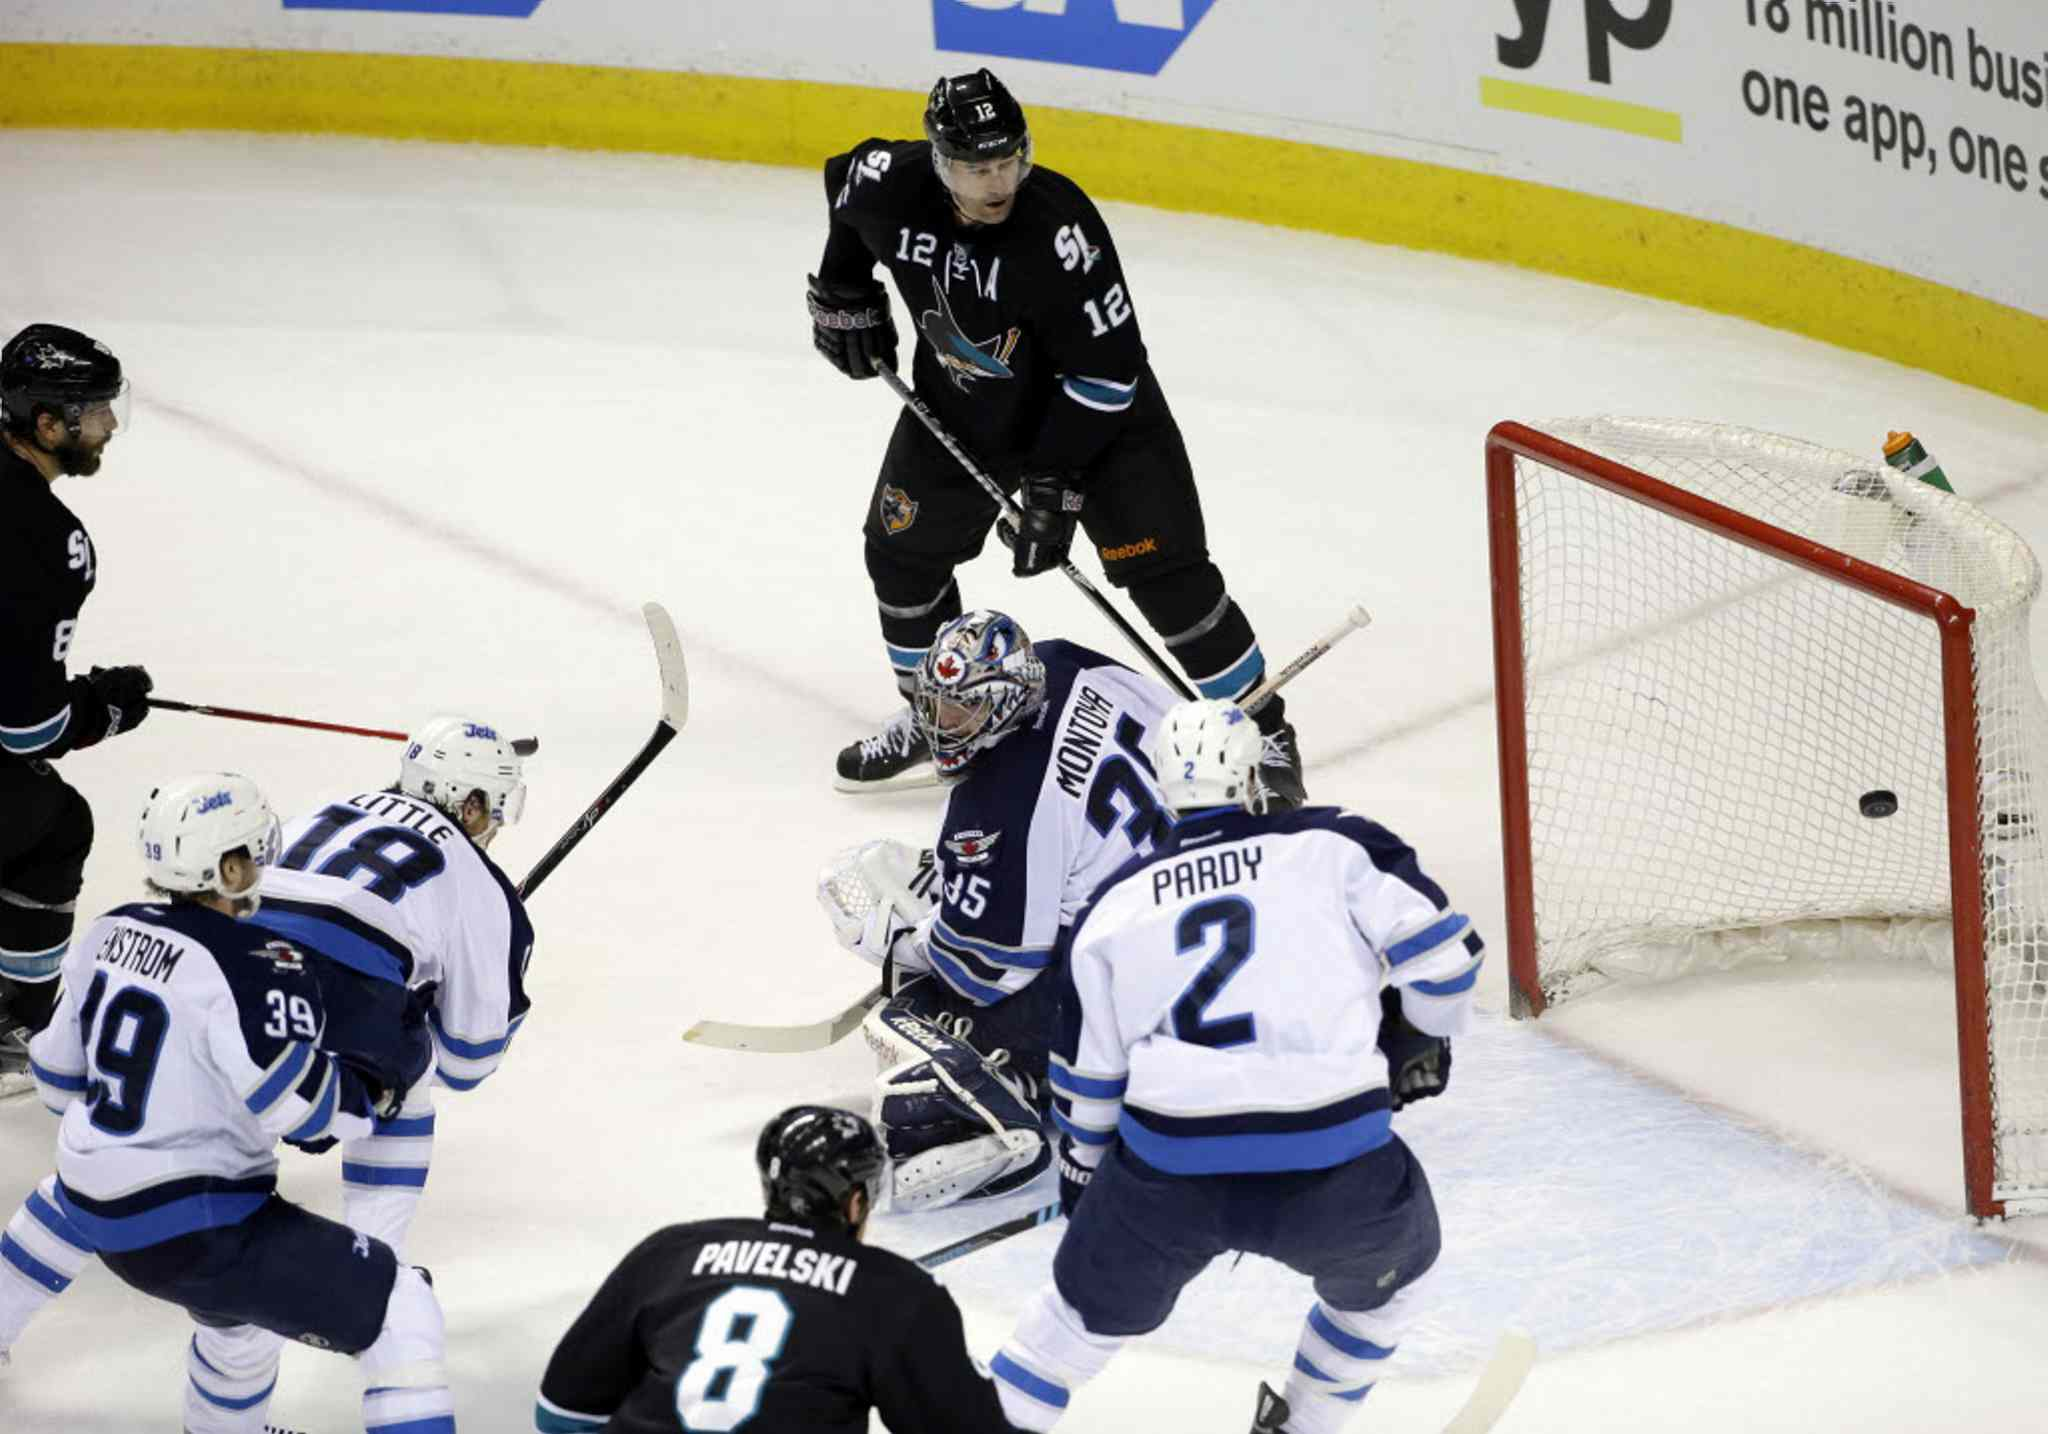 San Jose Sharks' Brent Burns, left, scores past Winnipeg Jets goalie Al Montoya, center, during the first period.